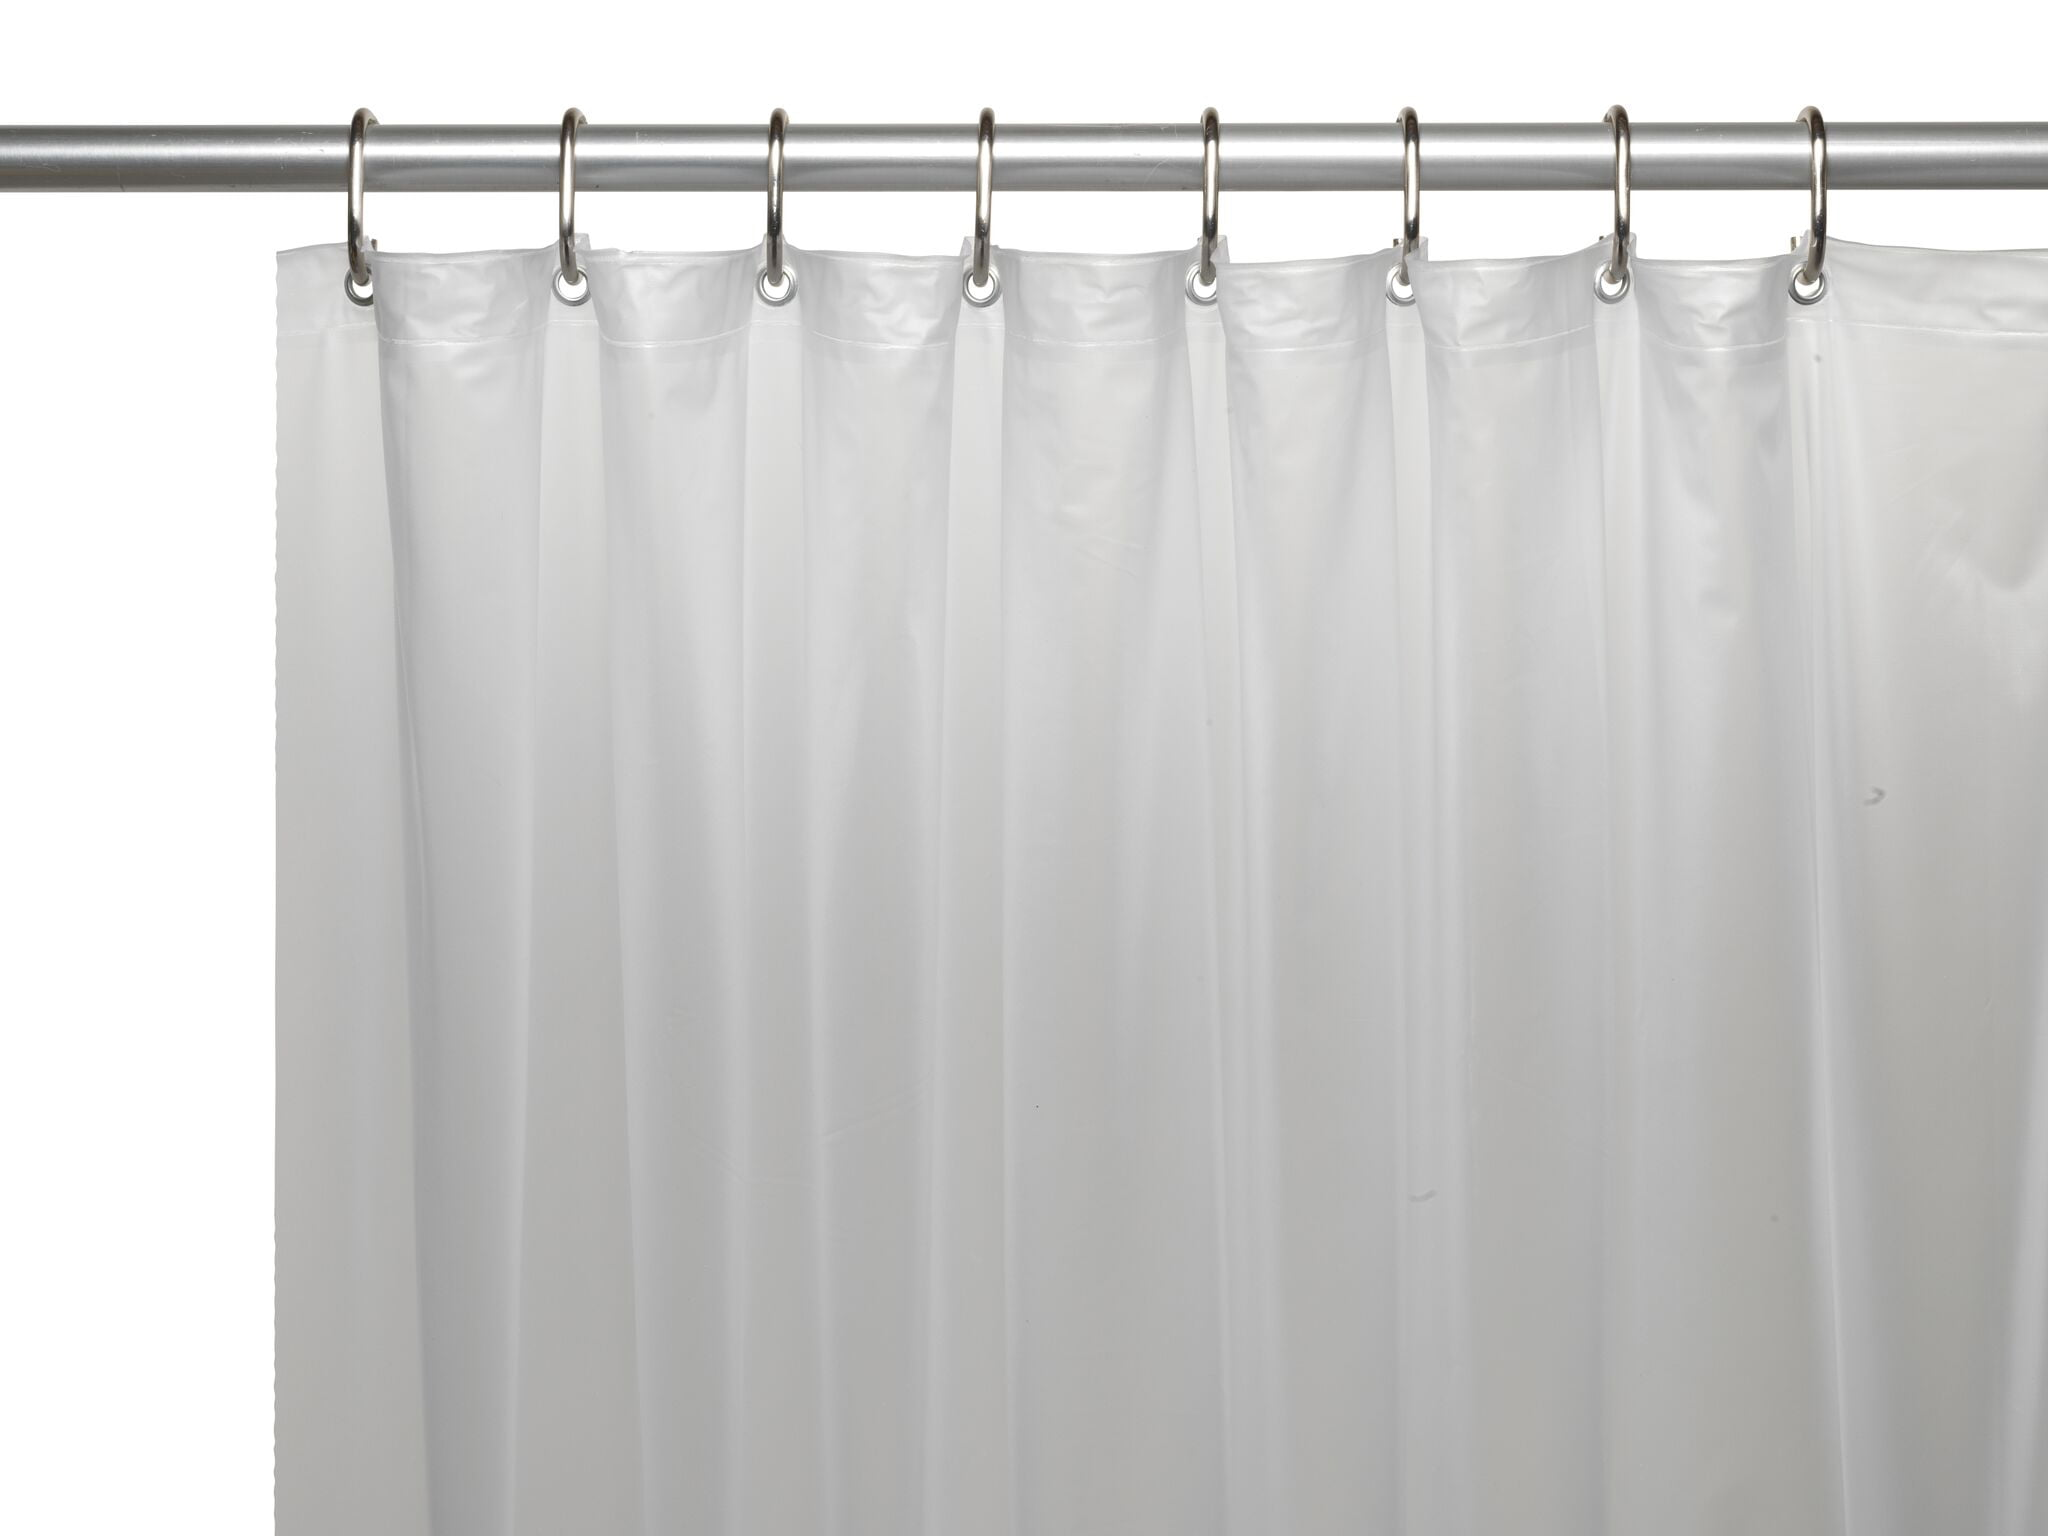 Hotel Collection Heavy Duty Mold Mildew Resistant PEVA Shower Curtain Liners With Metal Grommets Magnets